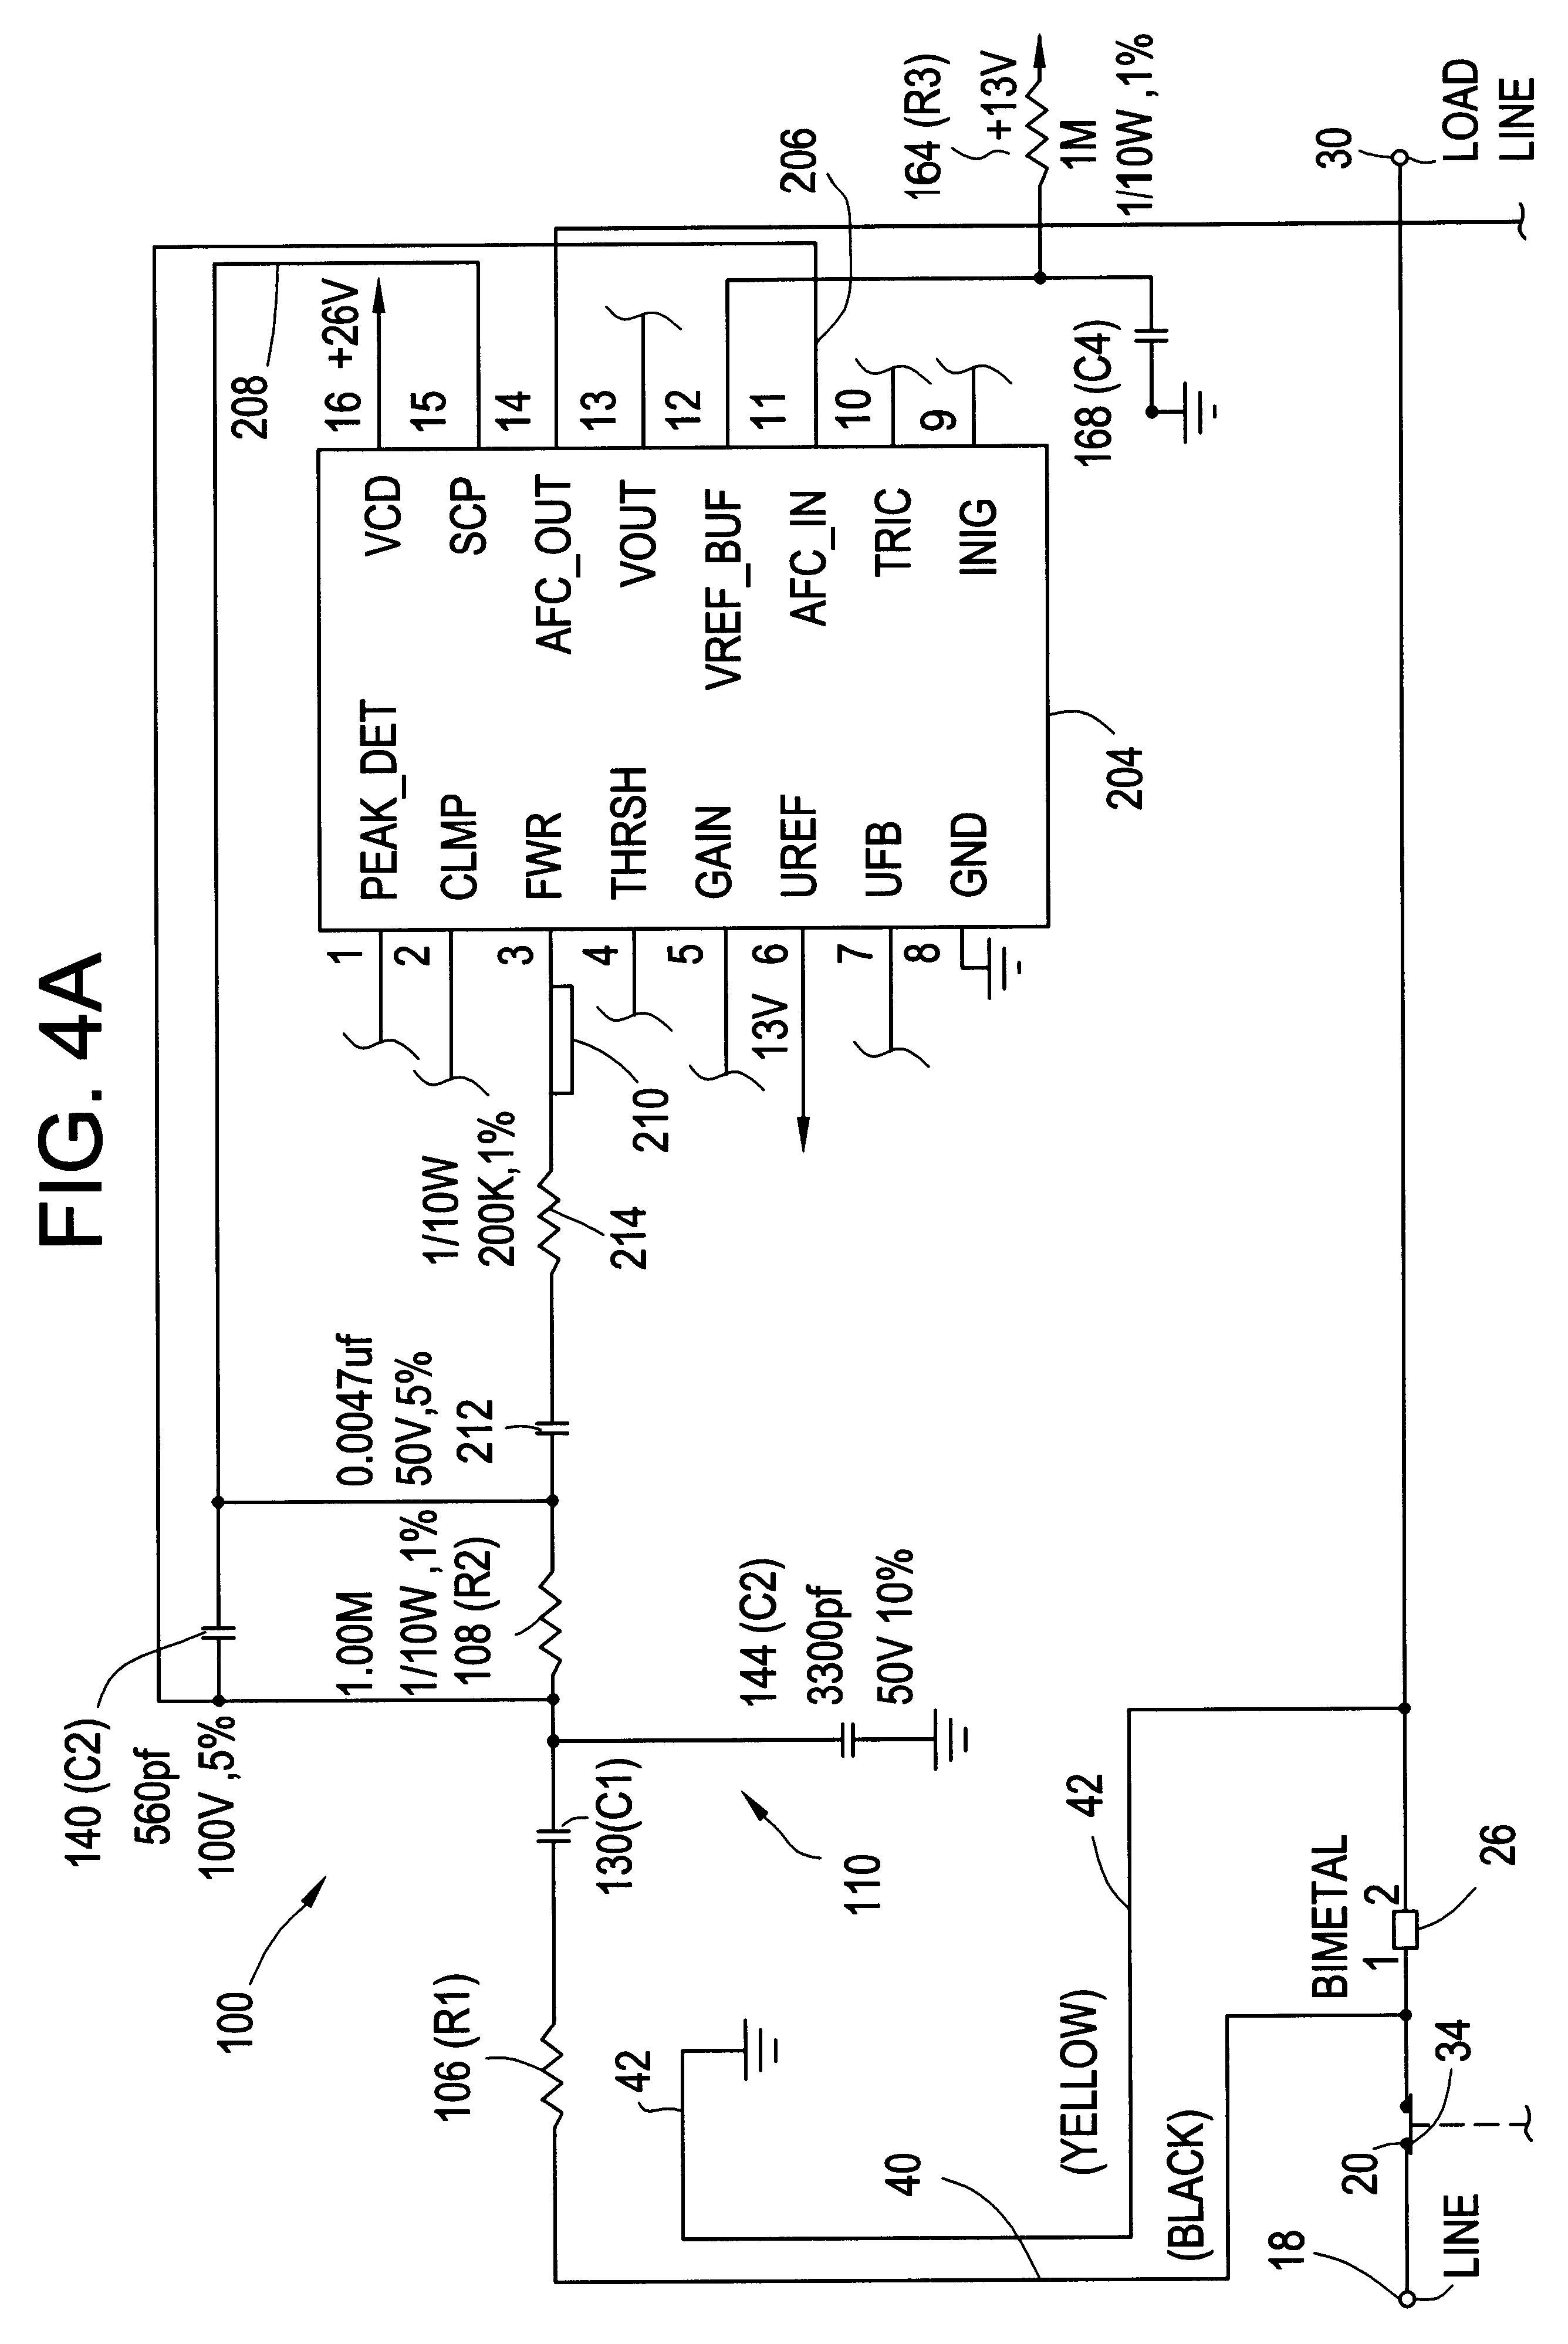 Afci Wiring Methods Diagrams Outlet Diagram Patent Us6678137 Temperature Compensation Circuit For An Receptacle